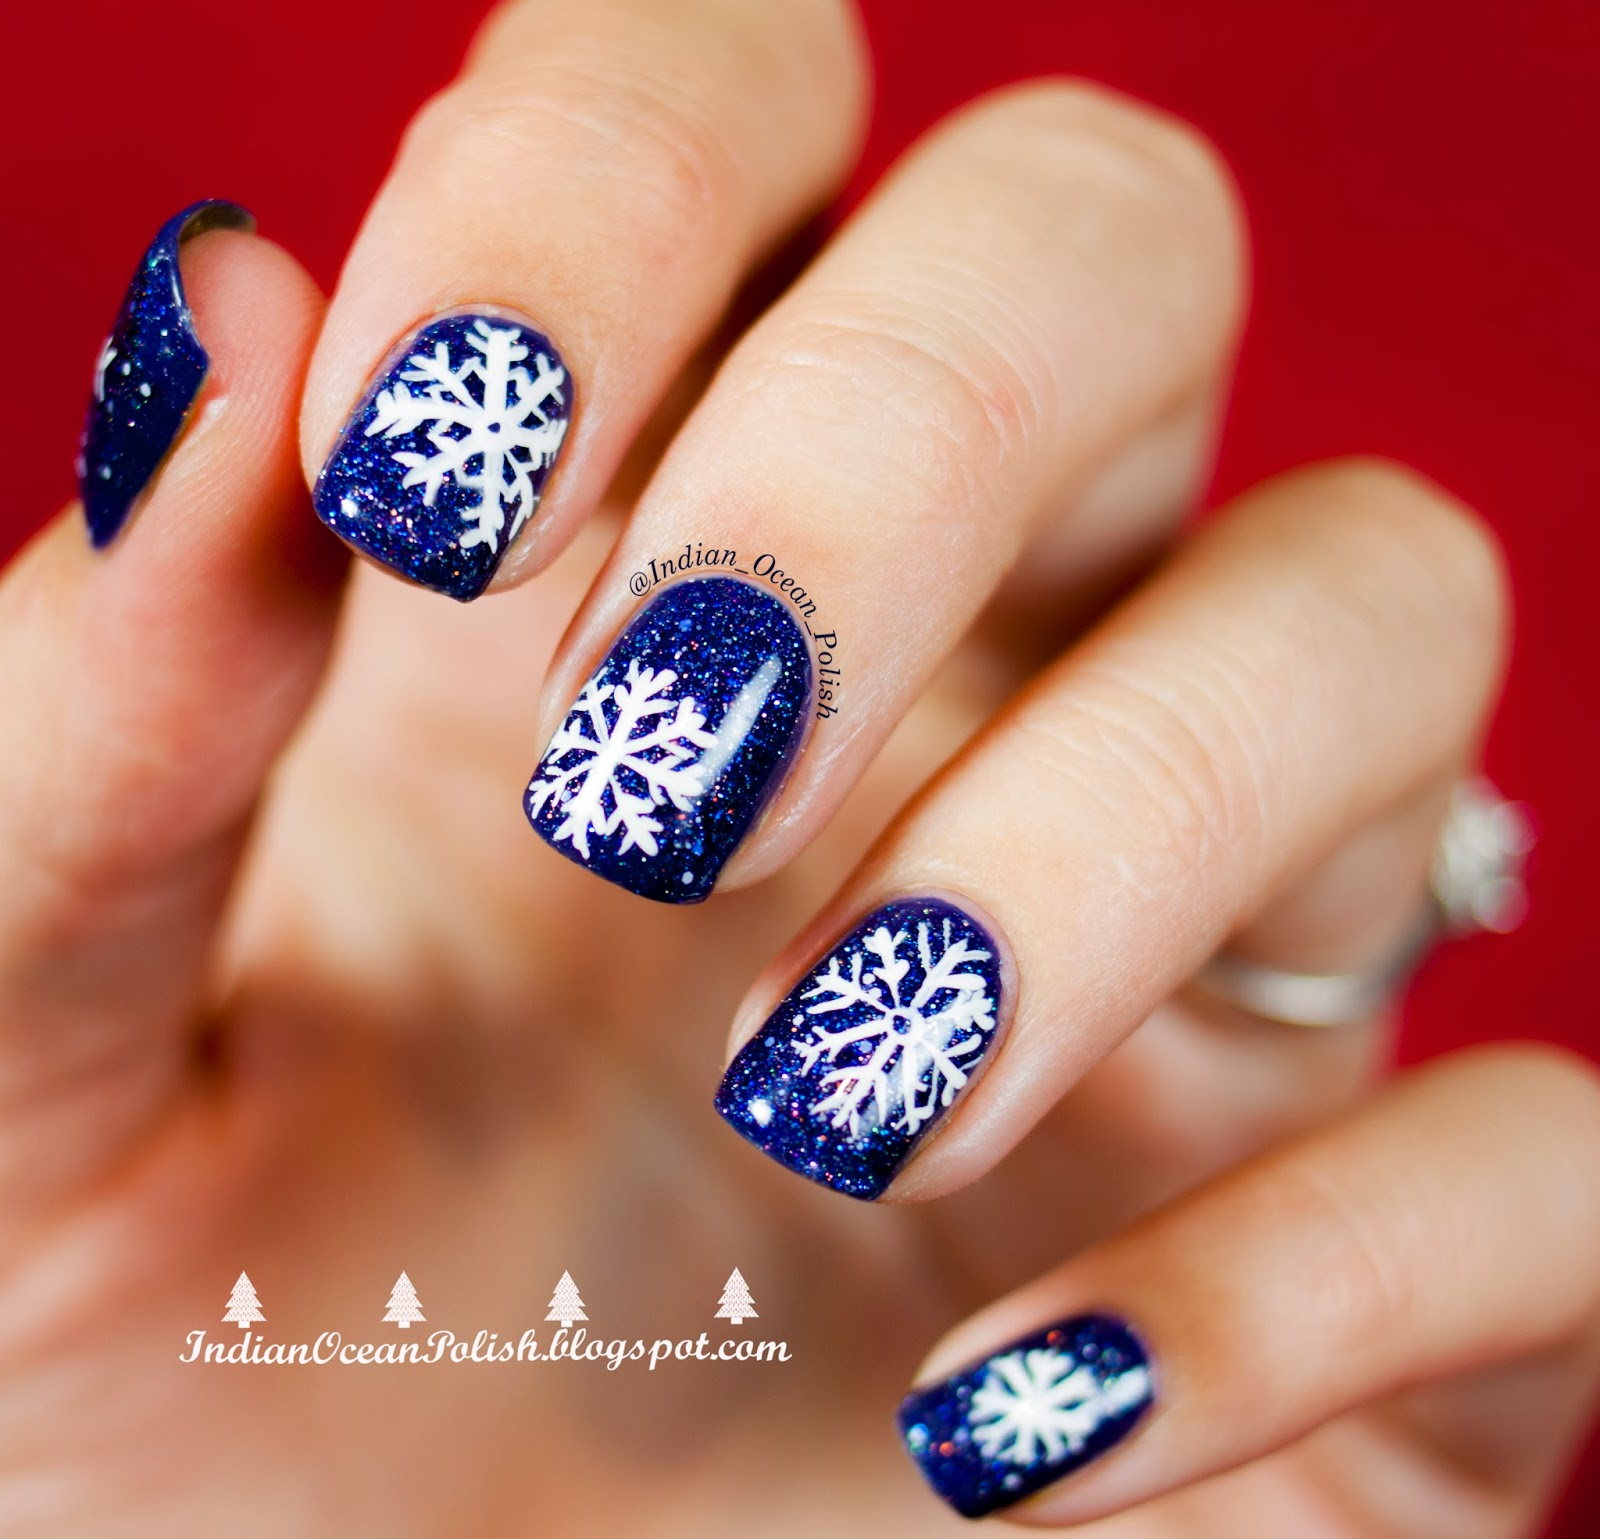 Christmas Nails Not Acrylic: Indian Ocean Polish: Christmas 2013 Nail Art Ideas: Simple